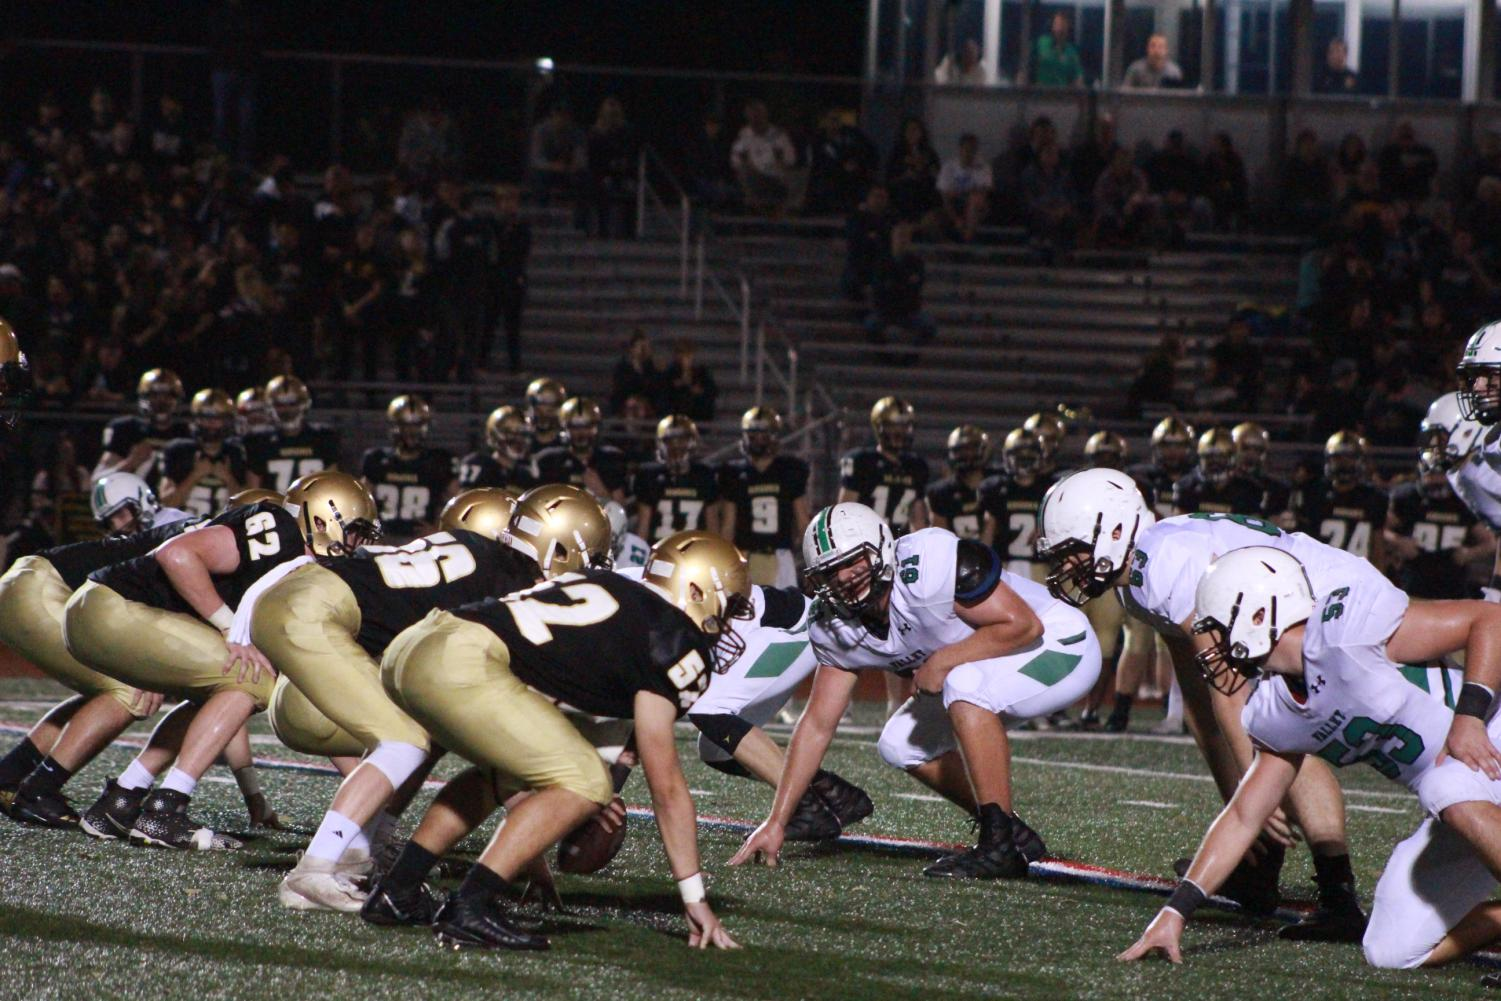 Lineman from both Pascack Valley and River Dell line up and get ready for the snap. The Golden Hawks won by a final of 42-6, ending the Indians' season.